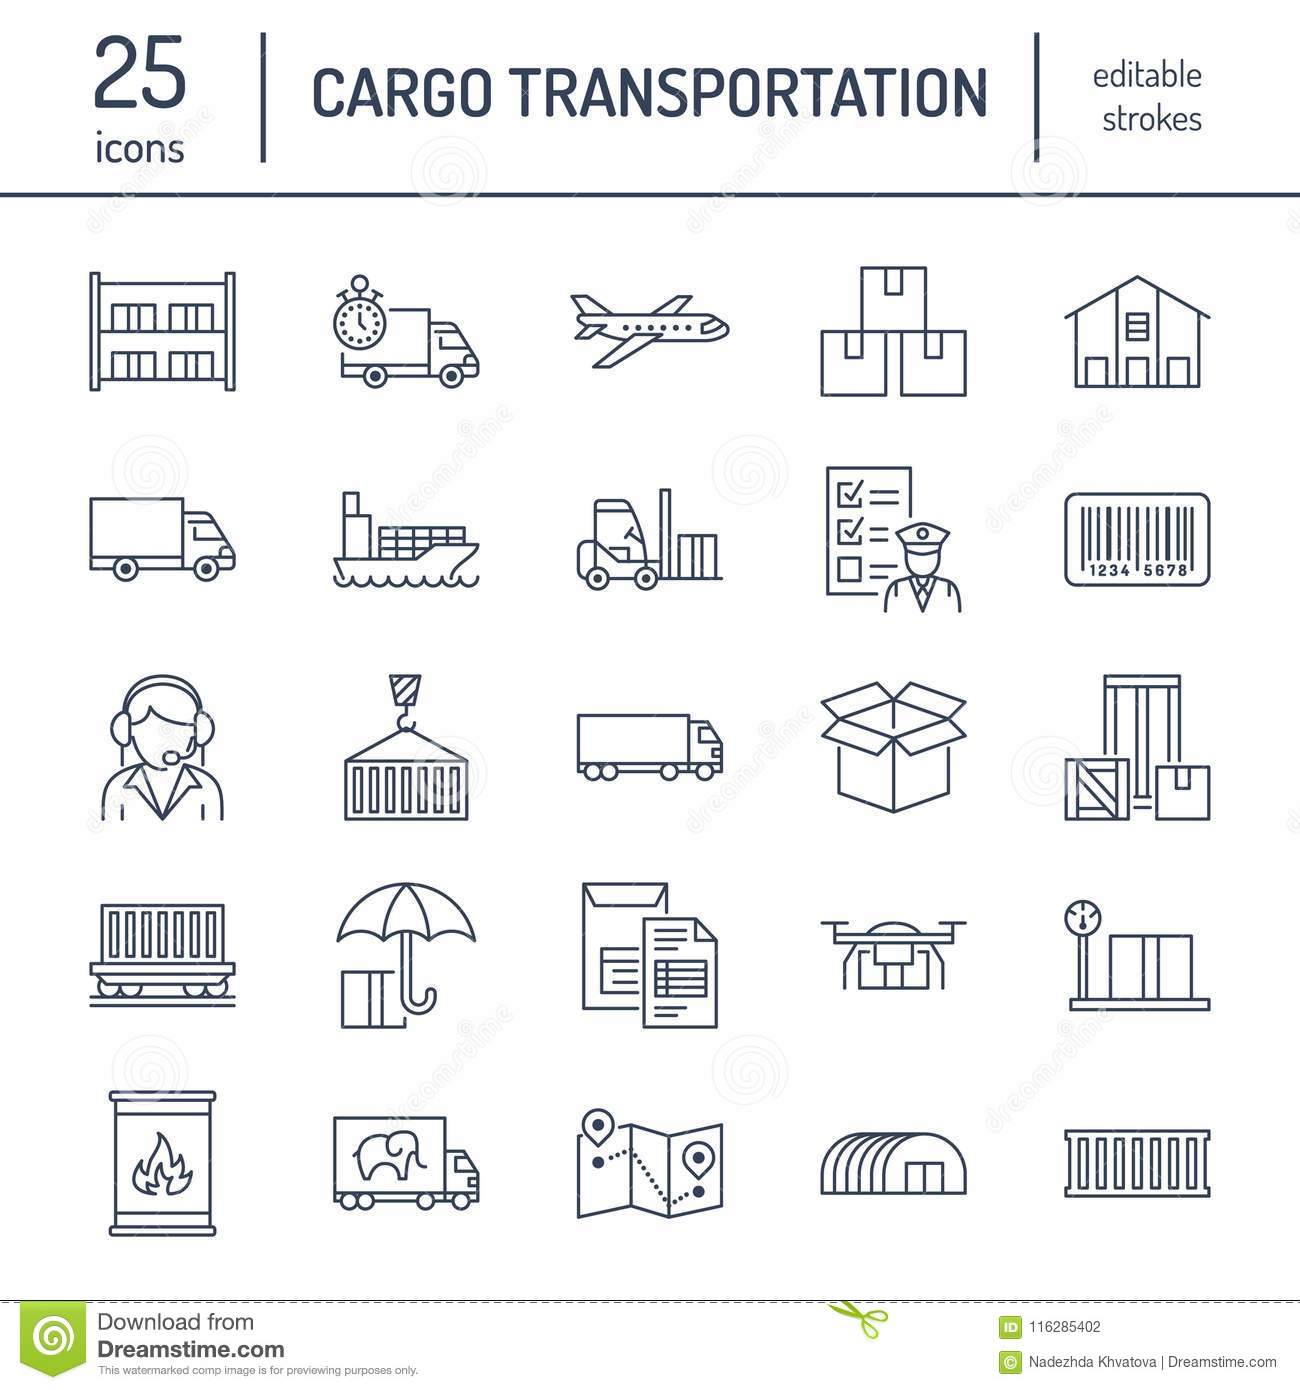 Cargo transportation flat line icons. Trucking, express delivery, logistics, shipping, customs clearance, cargoes